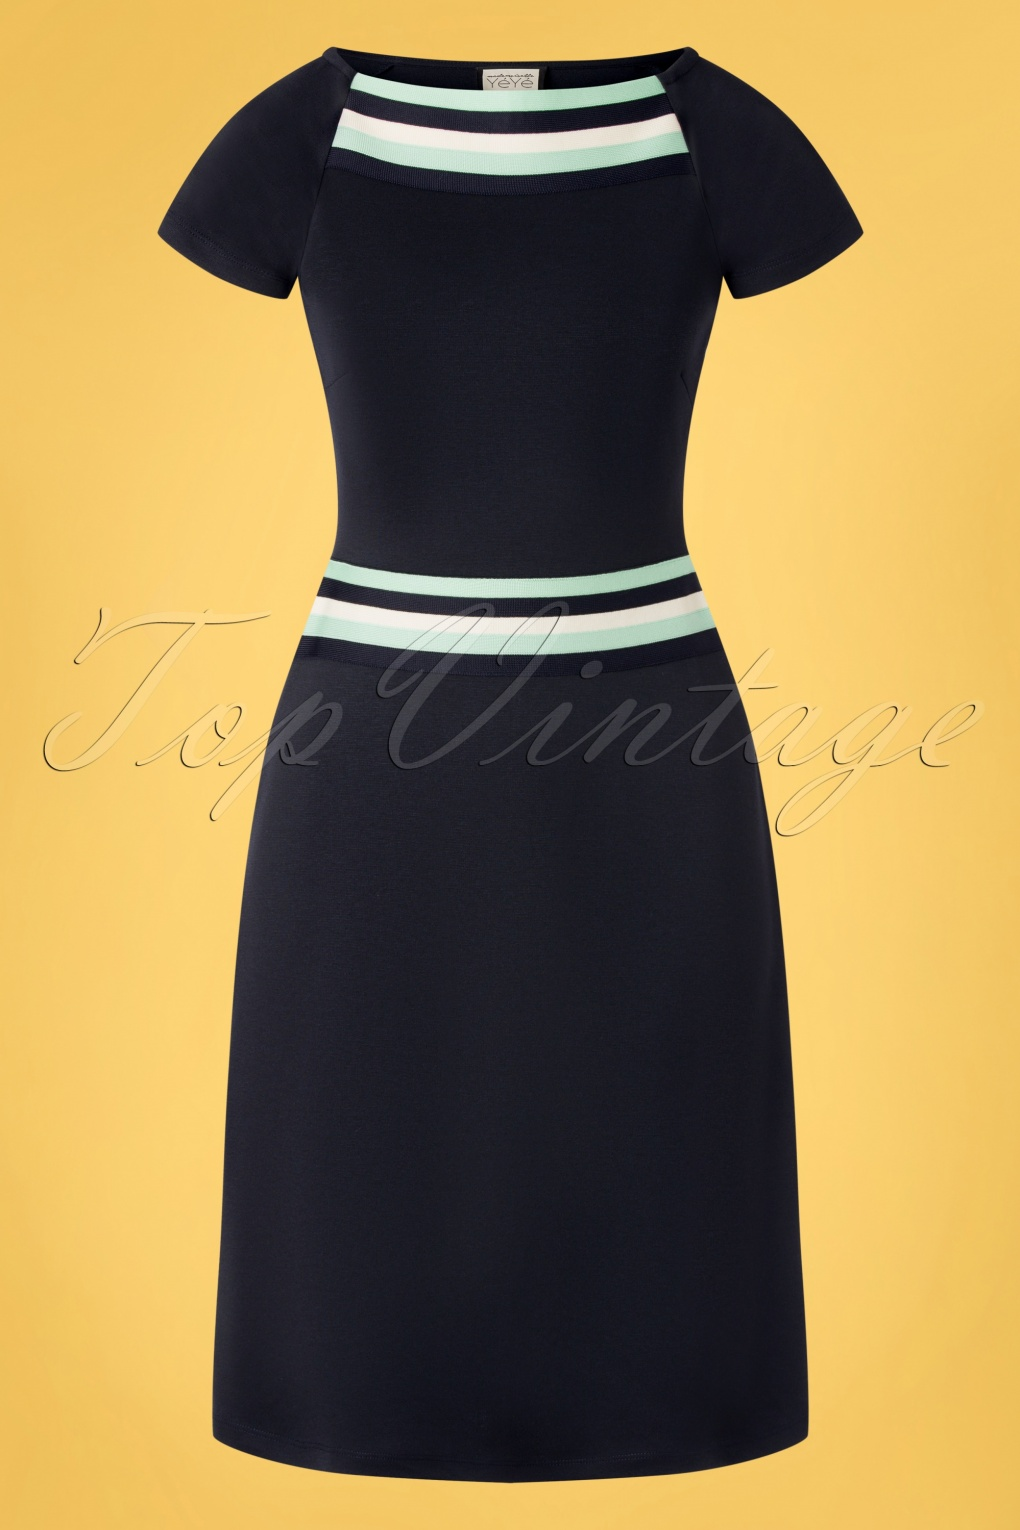 1960s Style Dresses, Clothing, Shoes UK 60s A Trip To Rome Dress in Navy £83.17 AT vintagedancer.com